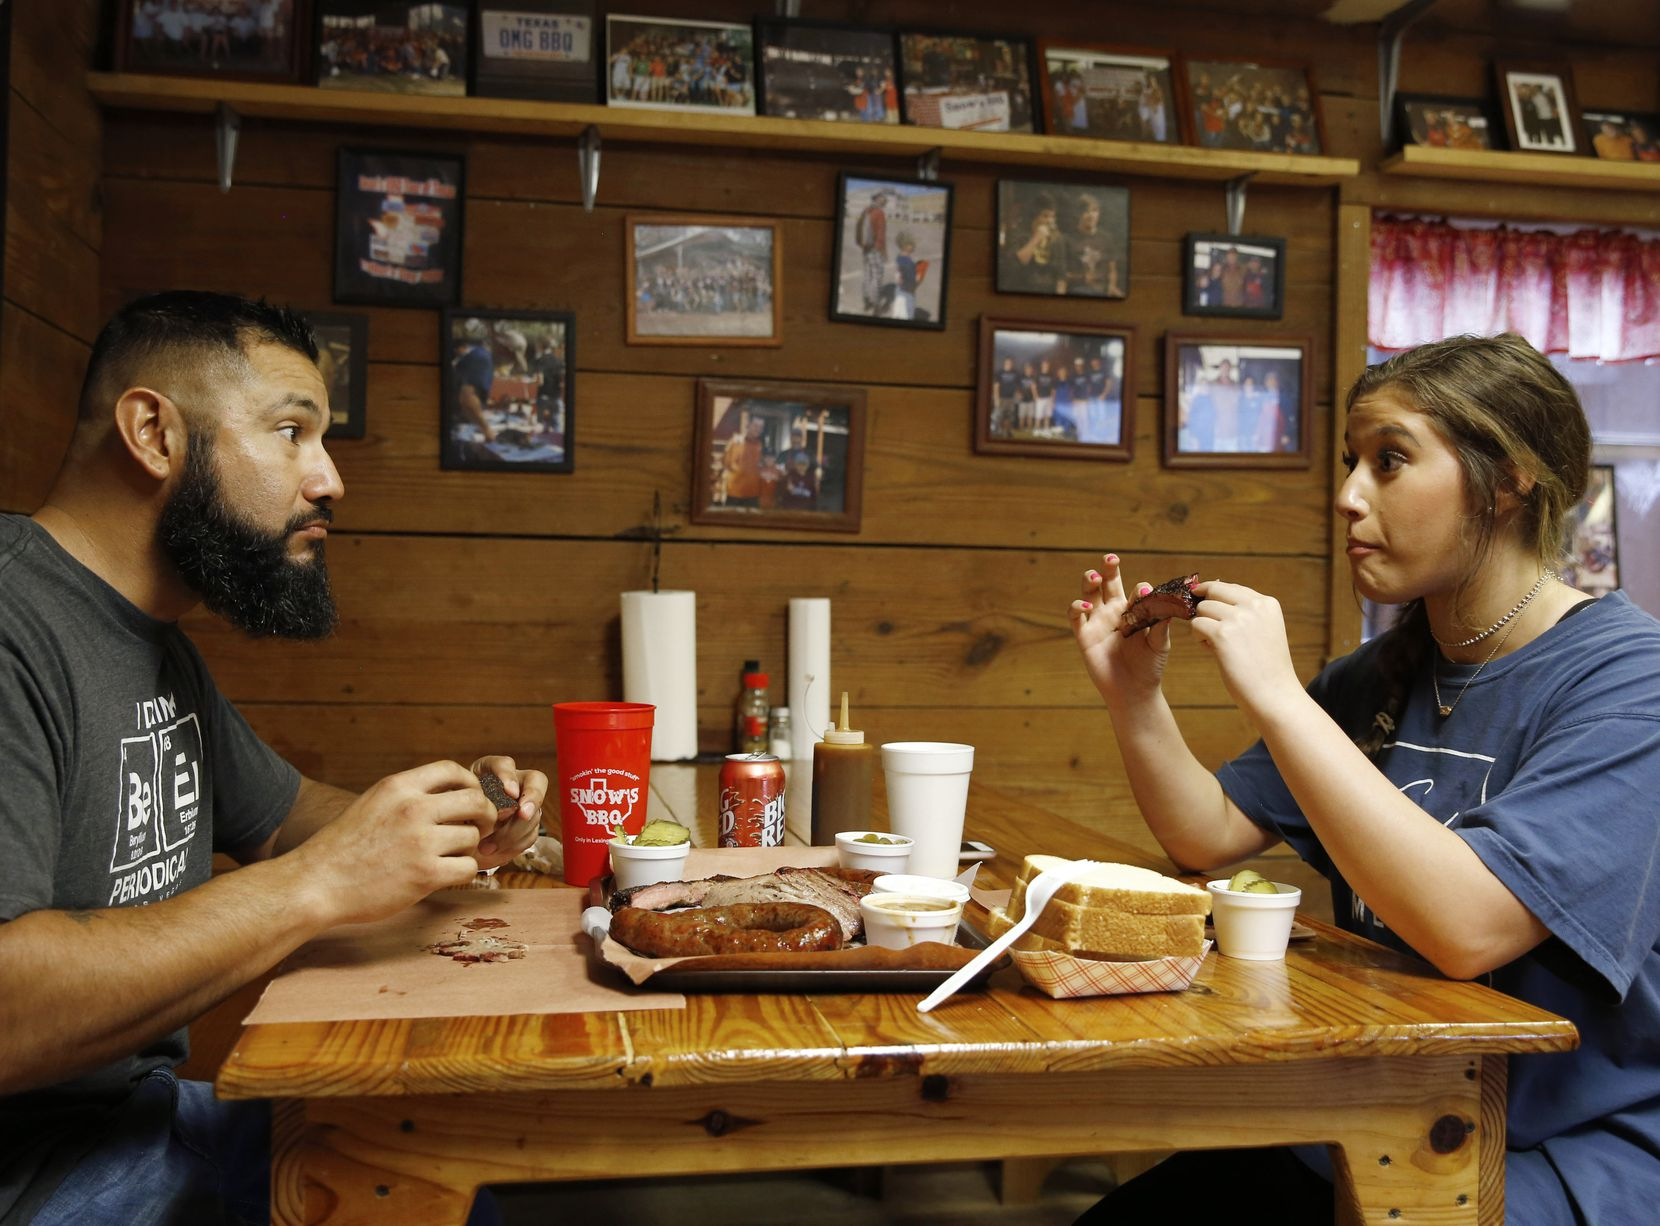 Pete and Dakota Rodriguez of Houston react after taking their first bite of a rib at Snow's BBQ. They arrived at 5 a.m. to be the first in line.